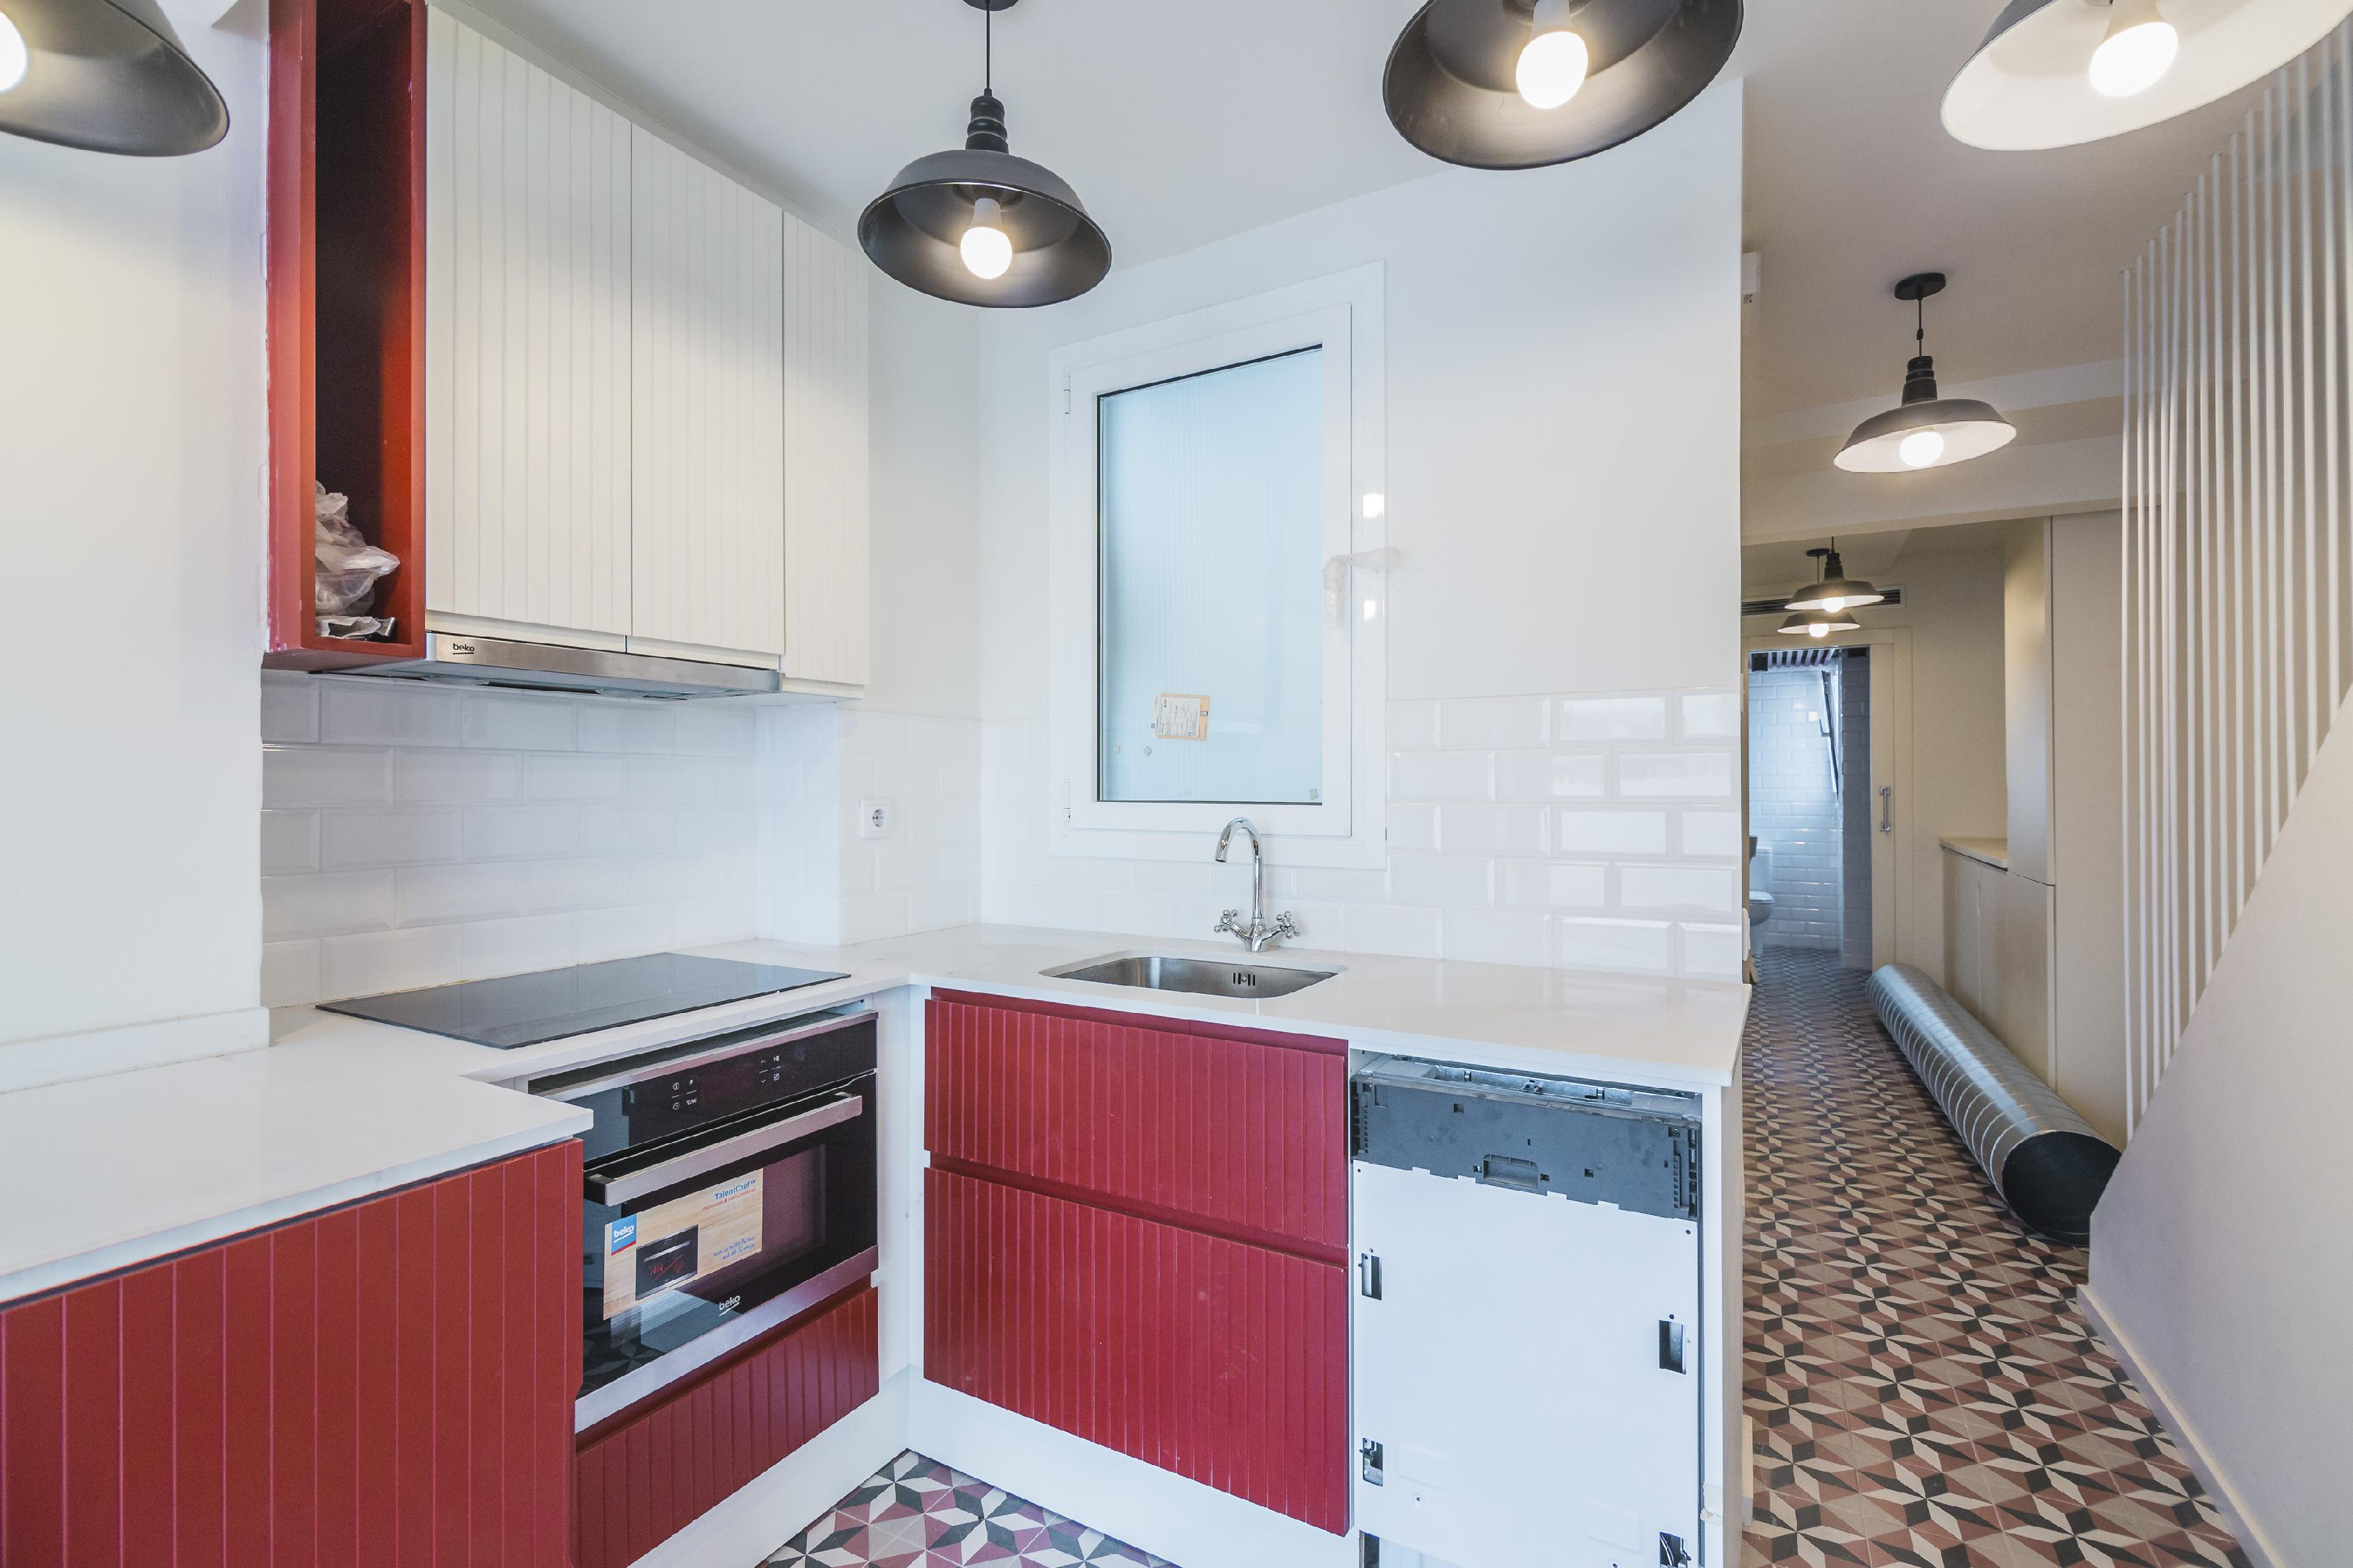 237520 Flat for sale in Ciutat Vella, St. Pere St. Caterina and La Ribera 30